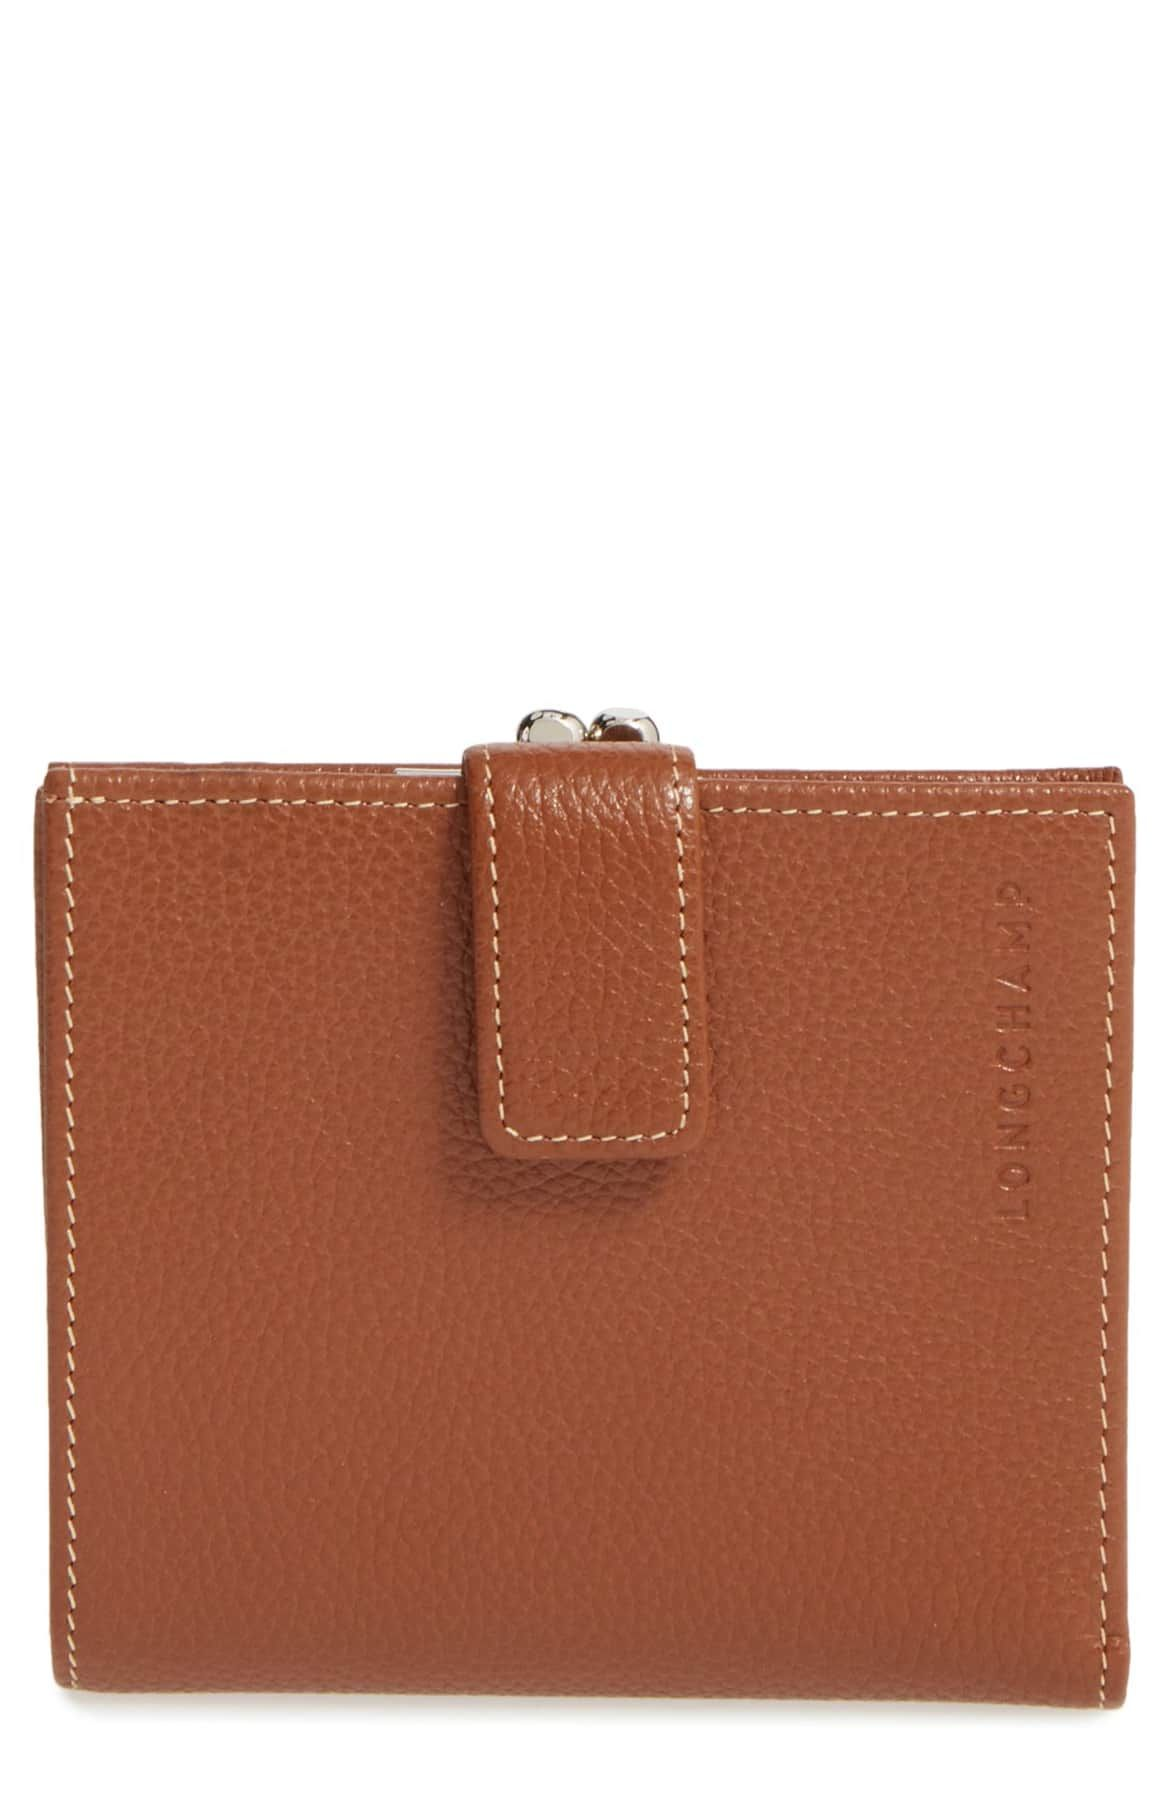 39411f4a857 Le Foulonne' Pebbled Leather Wallet, Main, color, COGNAC | 5-piece ...